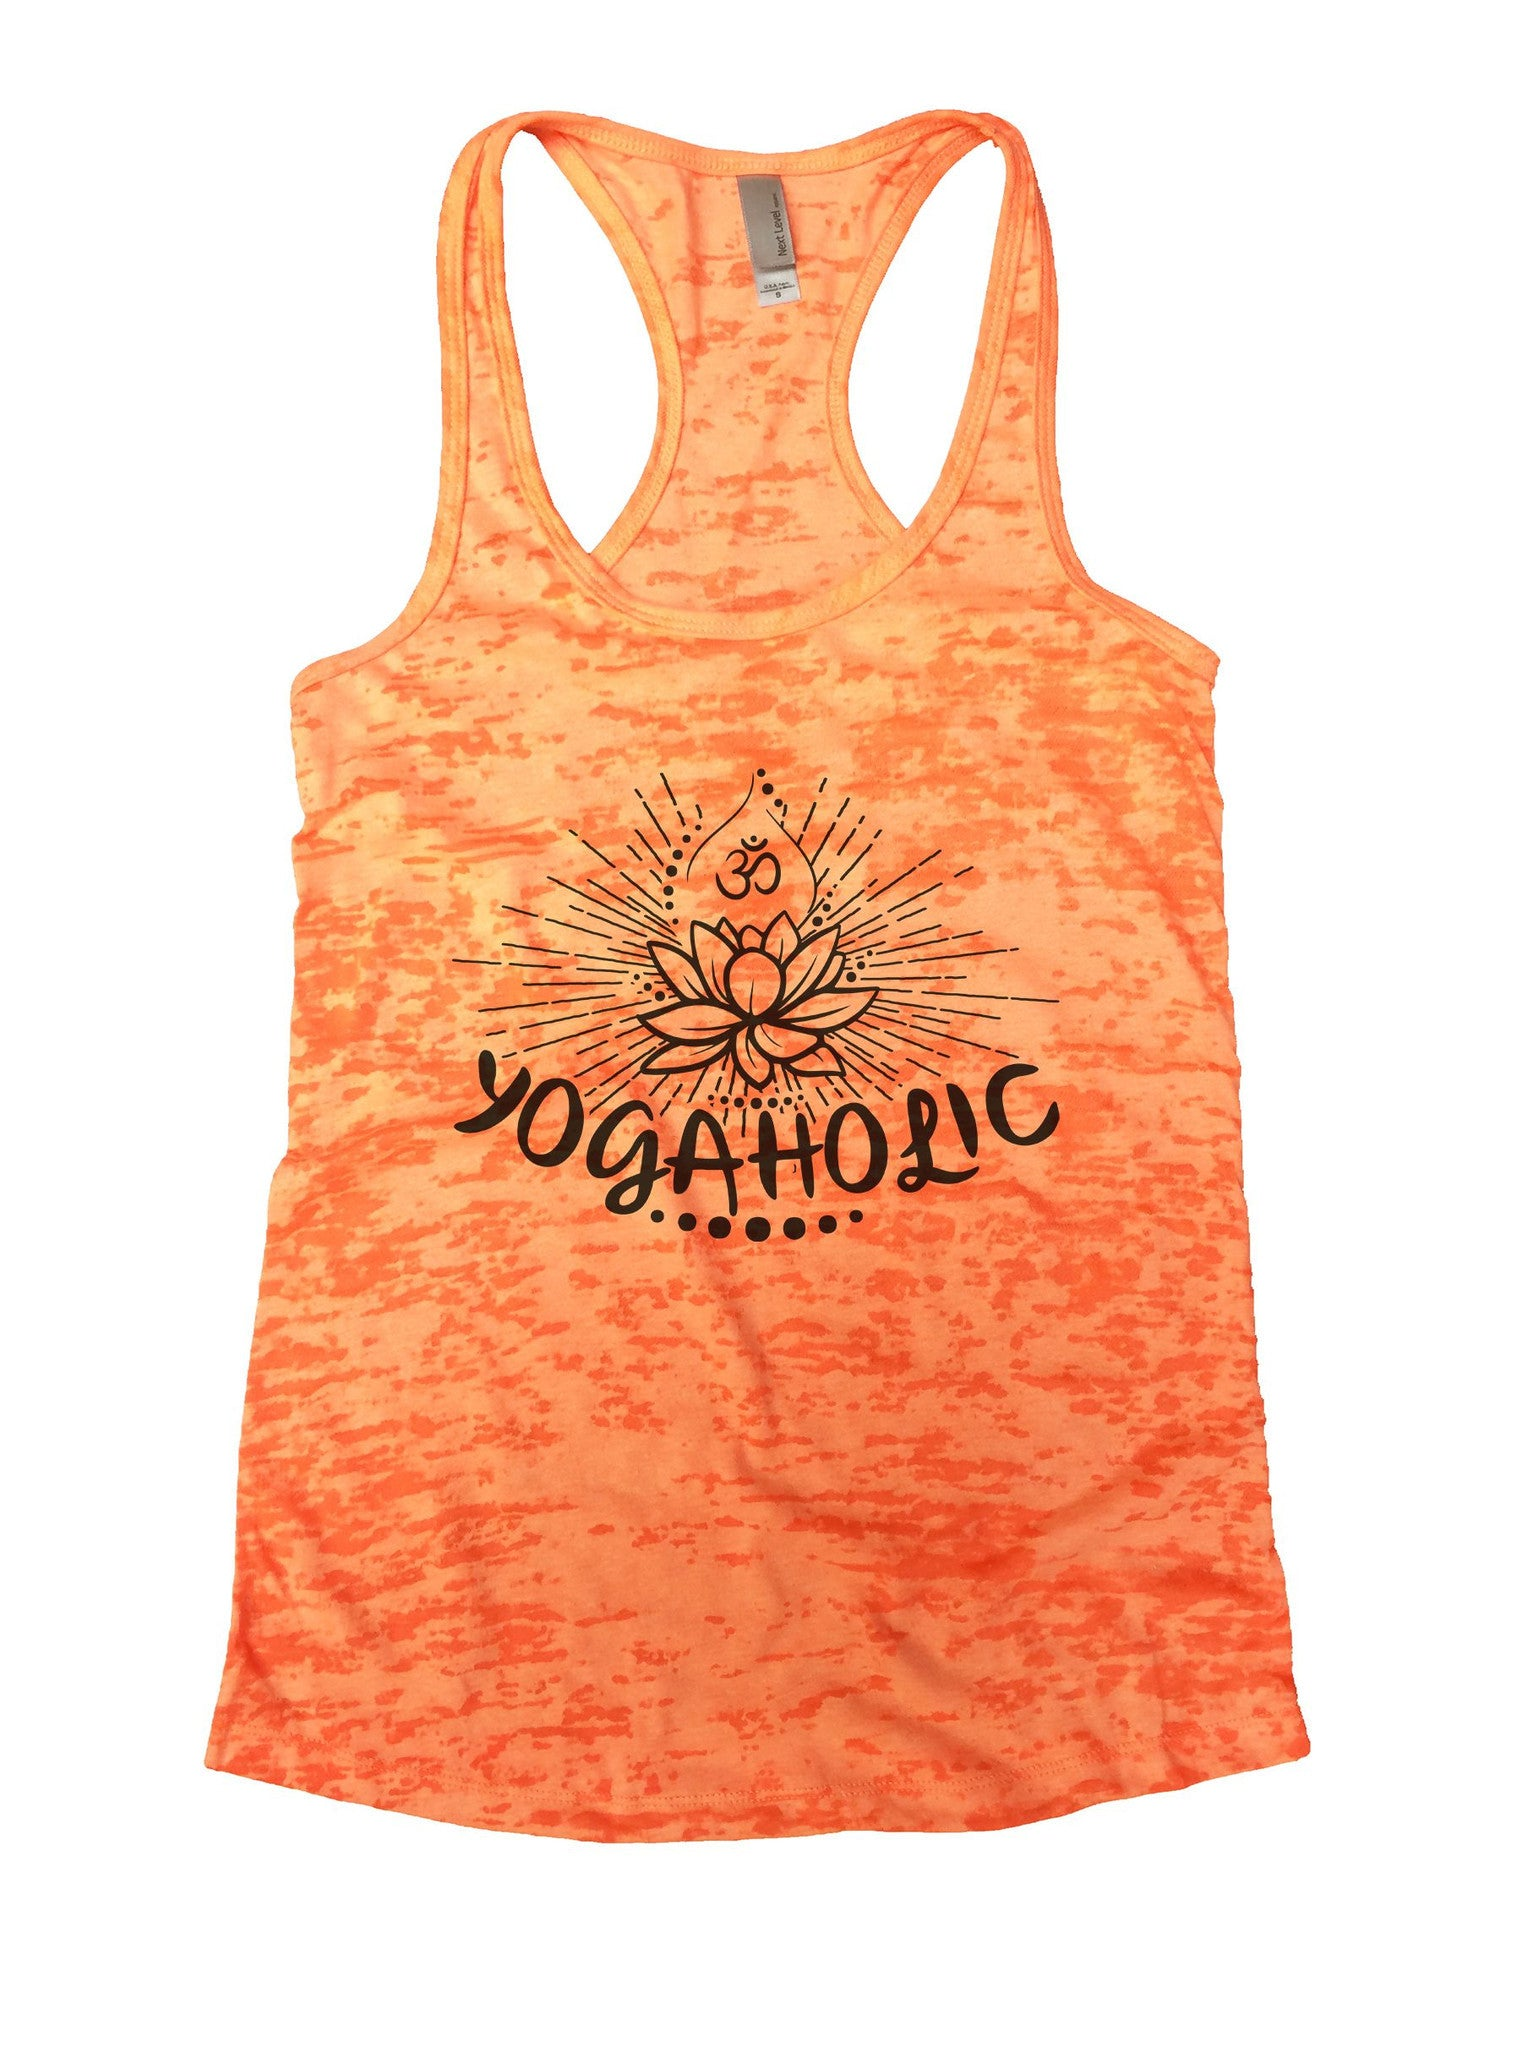 Yogaholic Burnout Tank Top By BurnoutTankTops.com - 1017 - Funny Shirts Tank Tops Burnouts and Triblends  - 3